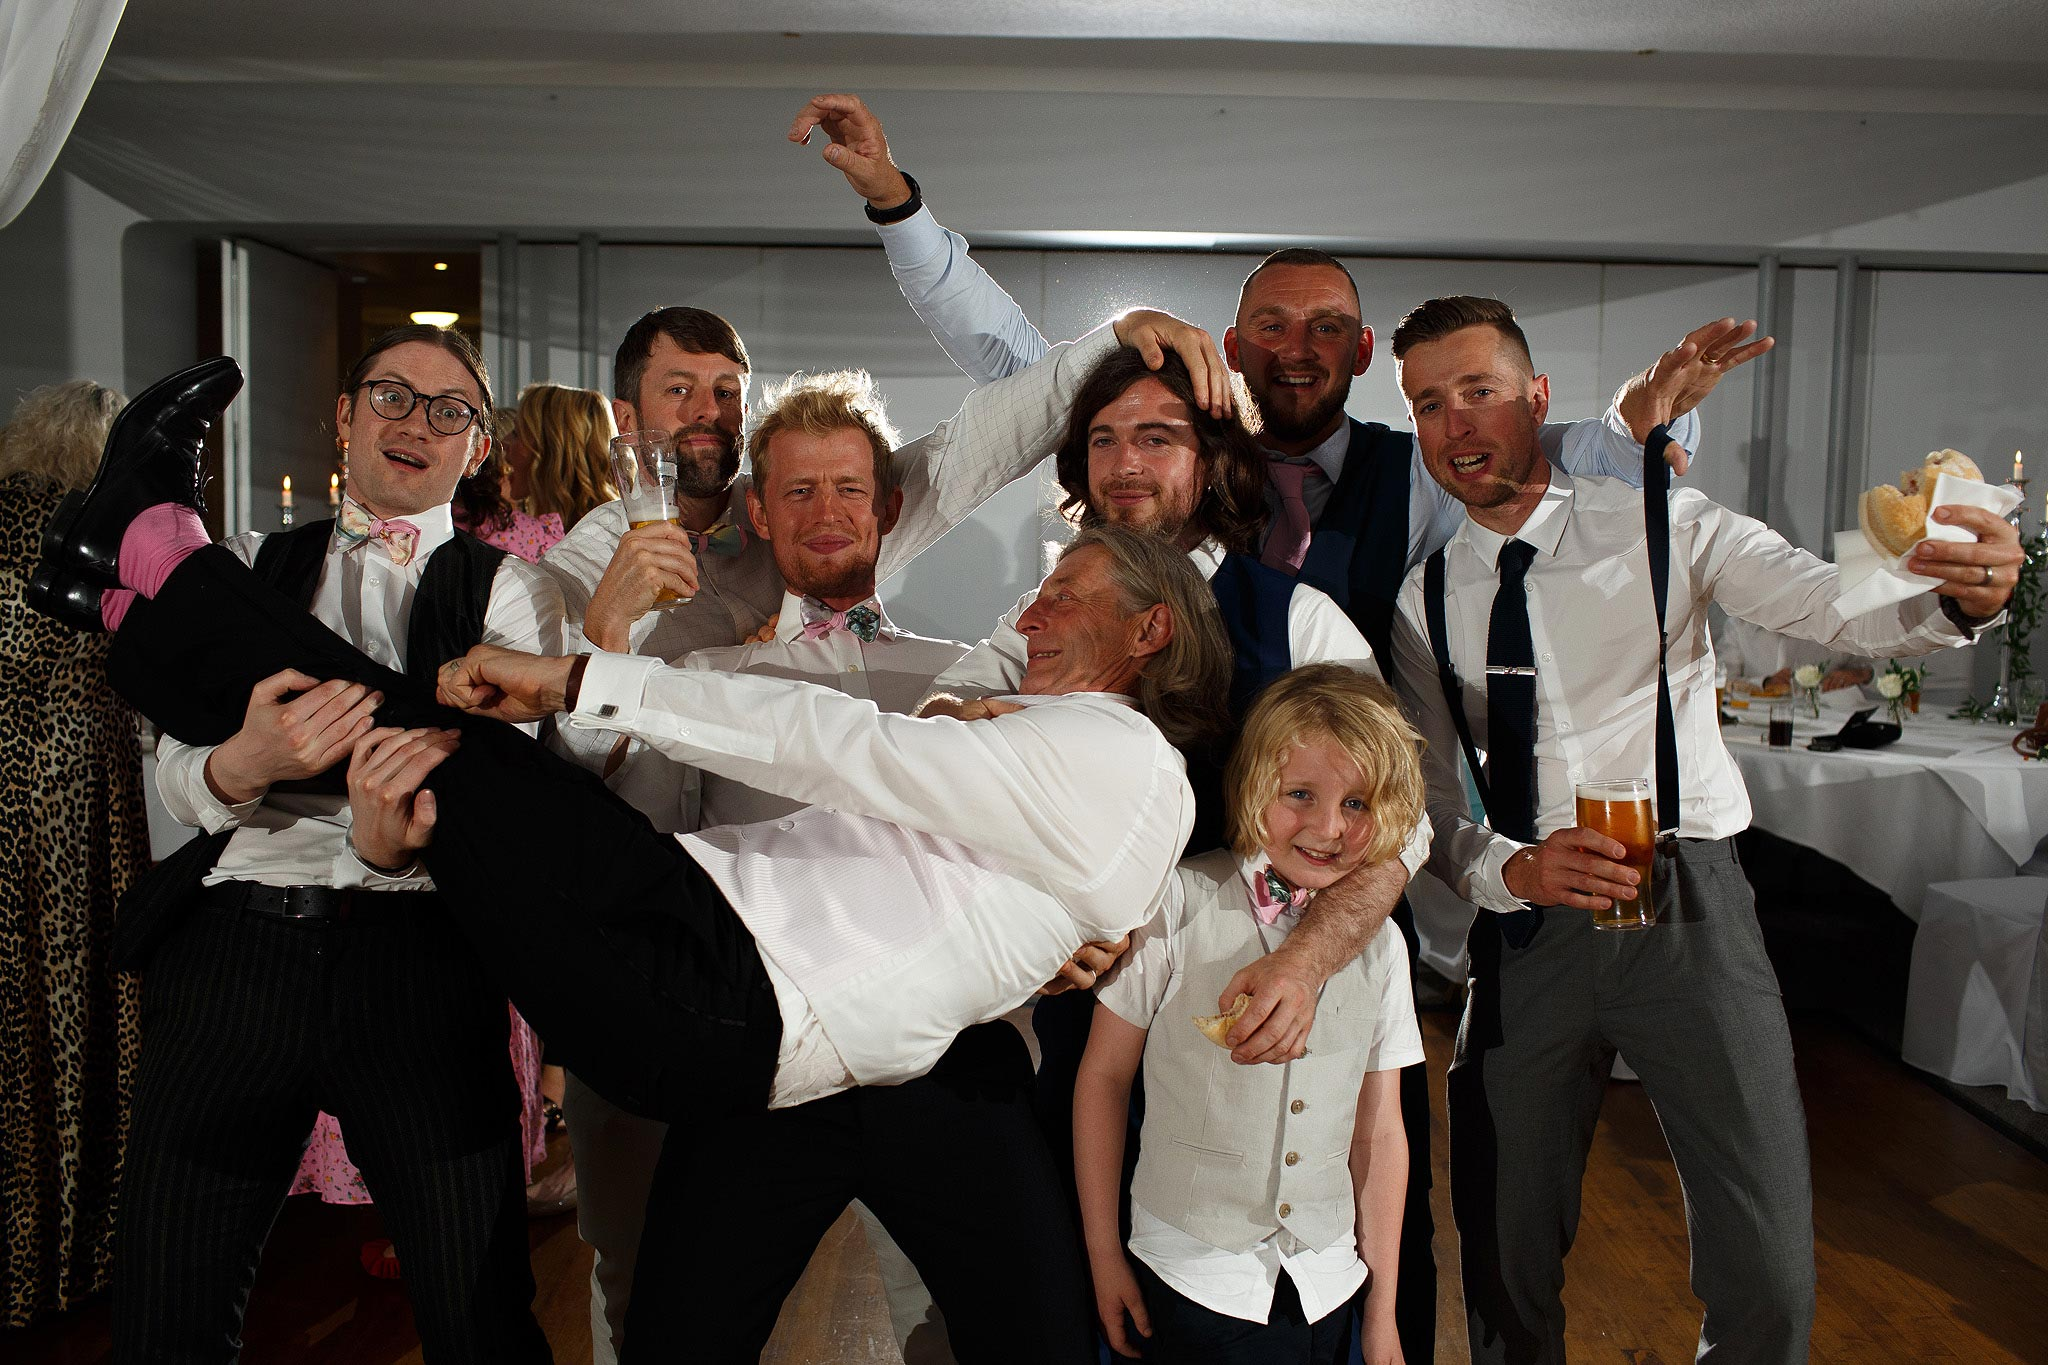 Guests on the dancefloor at Stirk House wedding reception